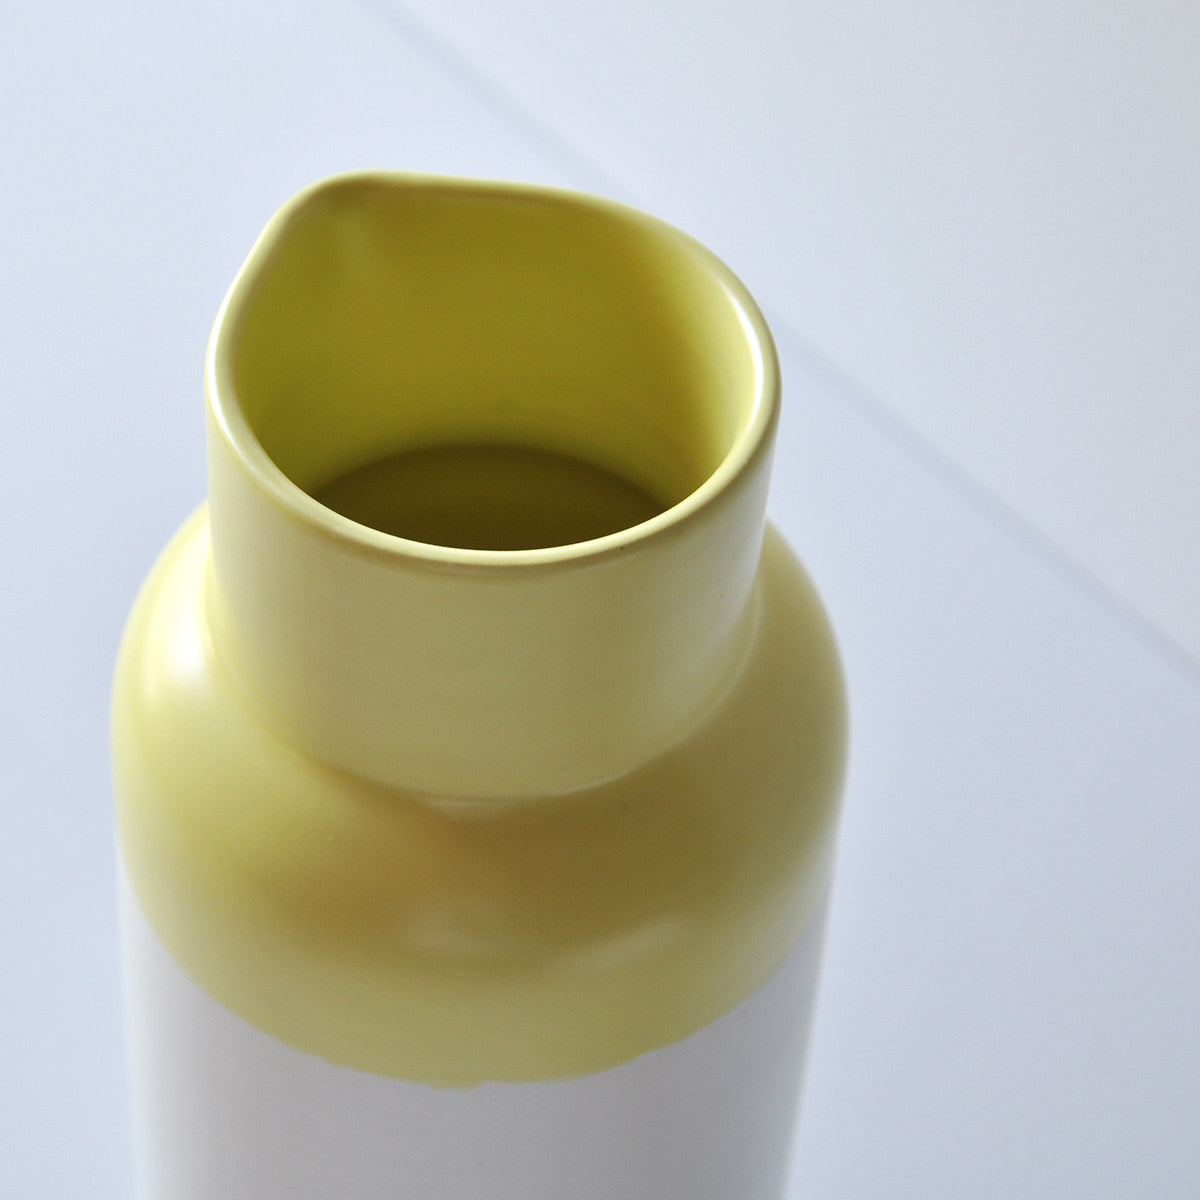 B01 YELLOW PITCHER